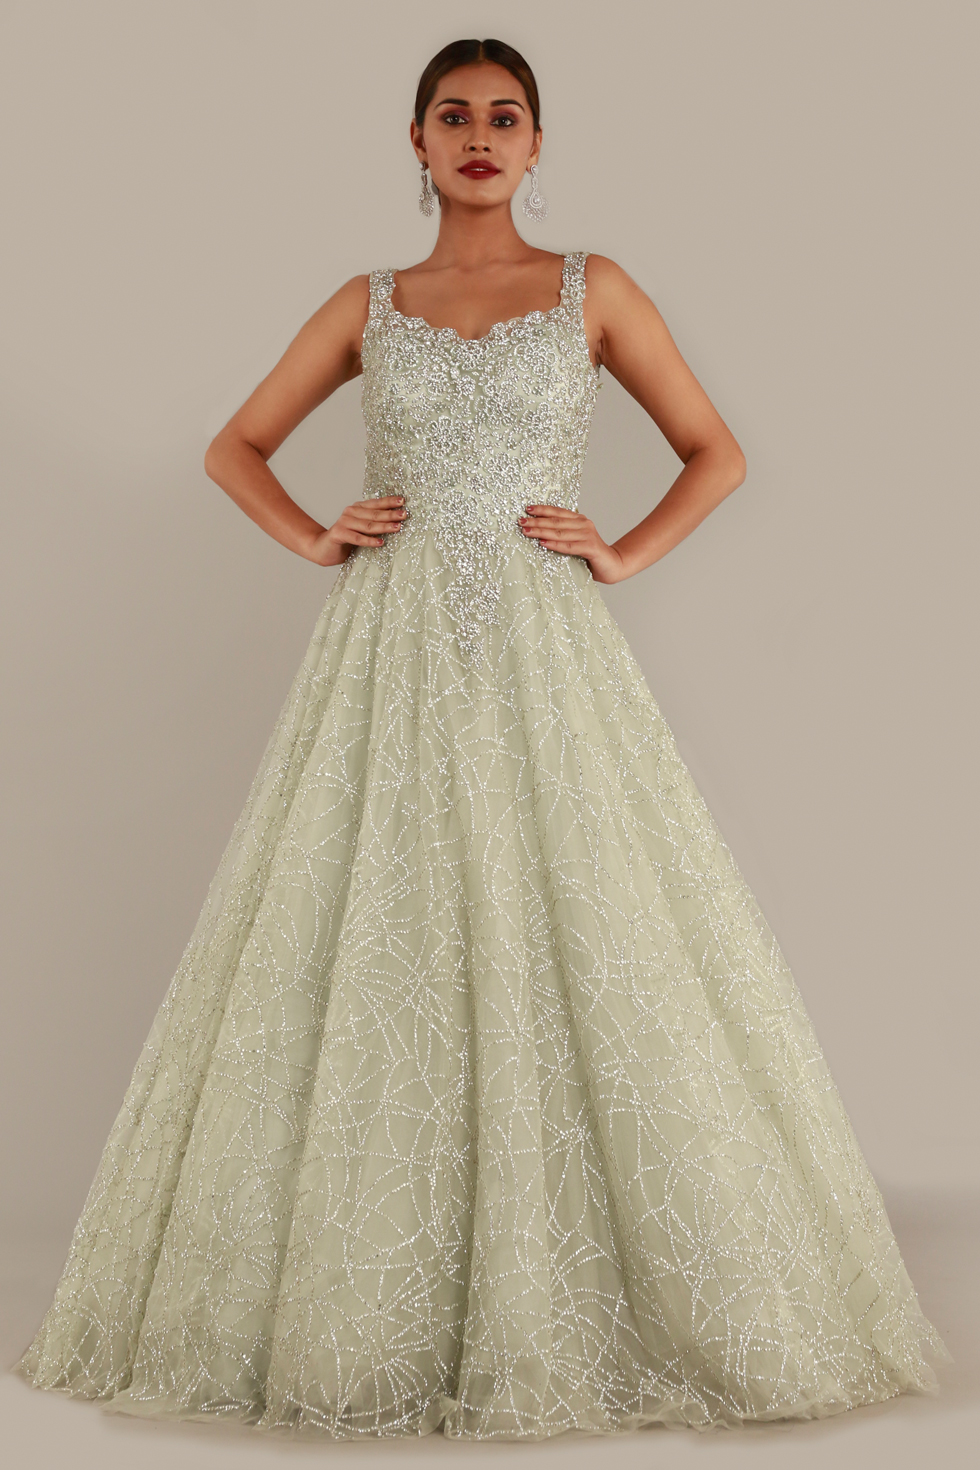 Pastel green shimmery tulle gown with cutwork neckline, silver embroidery and stone embellishments